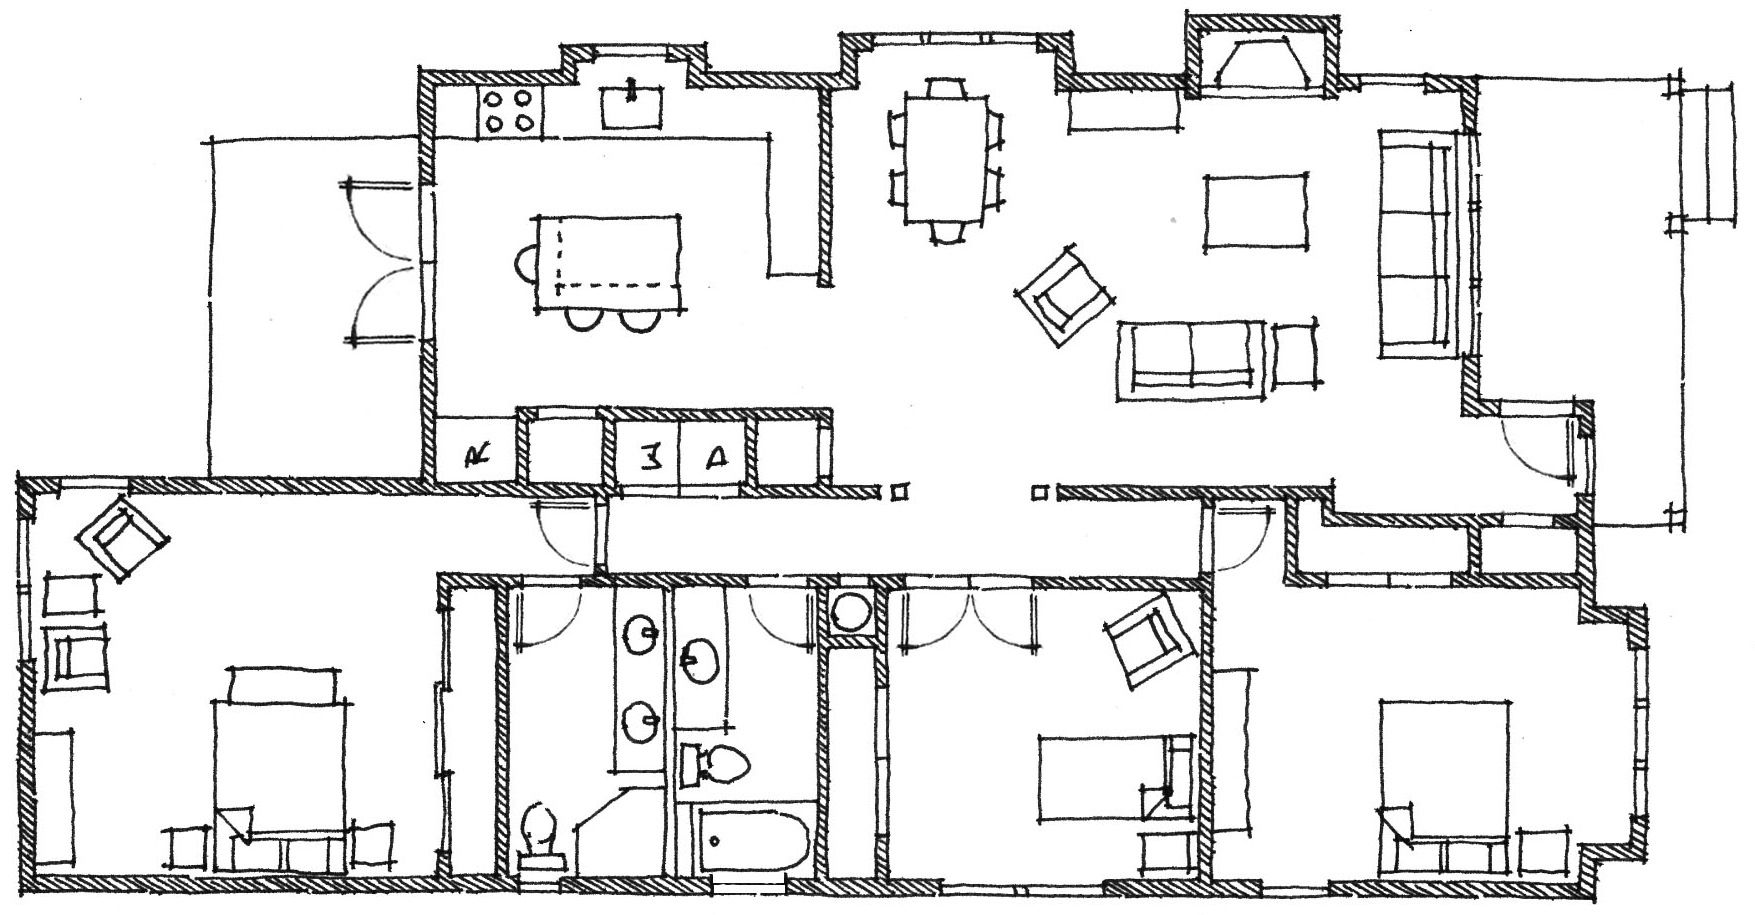 Old Fashioned Farmhouse Floor Plans Specifications are subject to